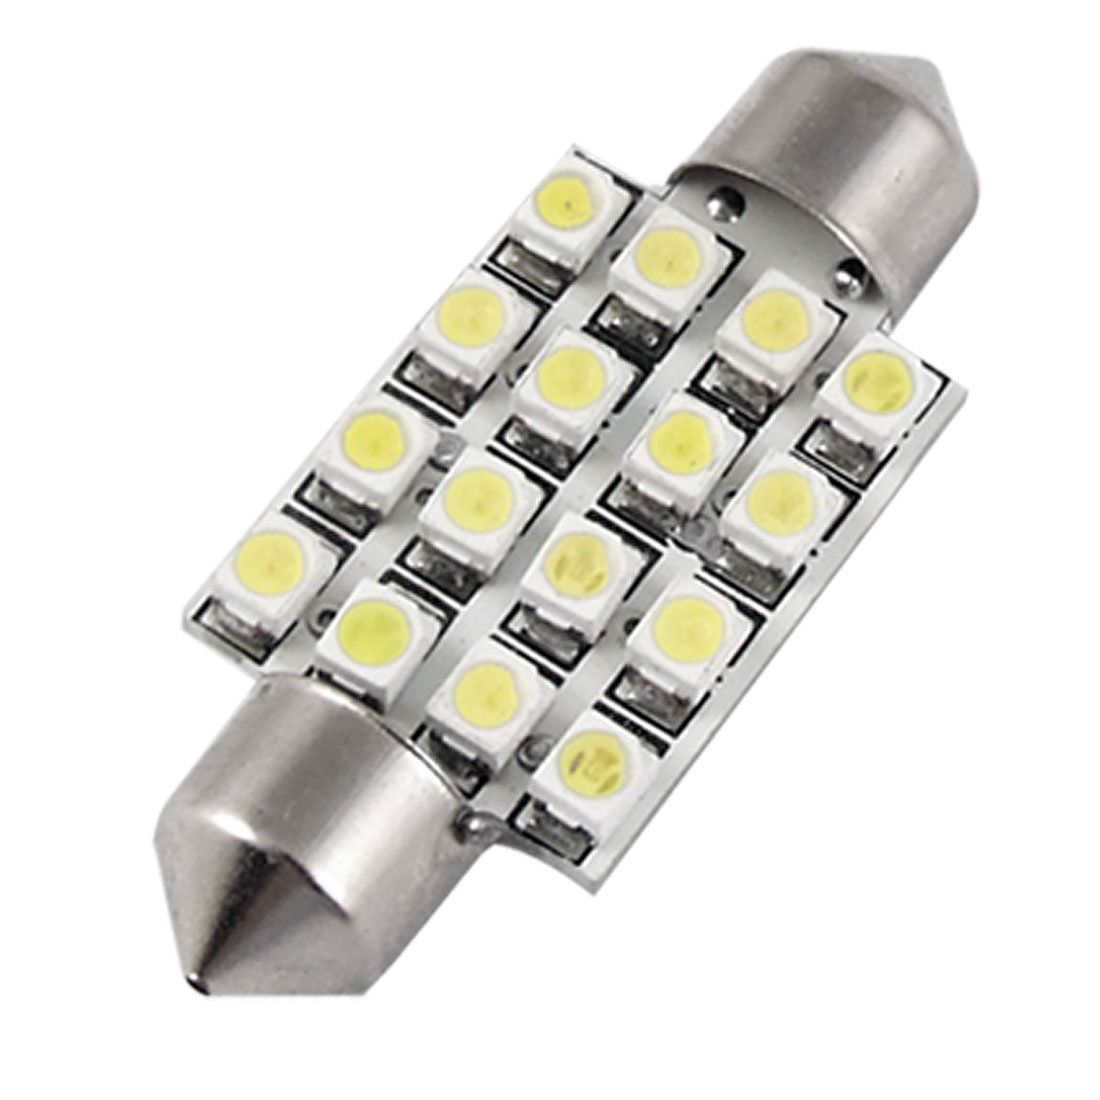 Amazon uxcell car 38mm white 16 smd led interior festoon dome amazon uxcell car 38mm white 16 smd led interior festoon dome map light bulb automotive arubaitofo Choice Image